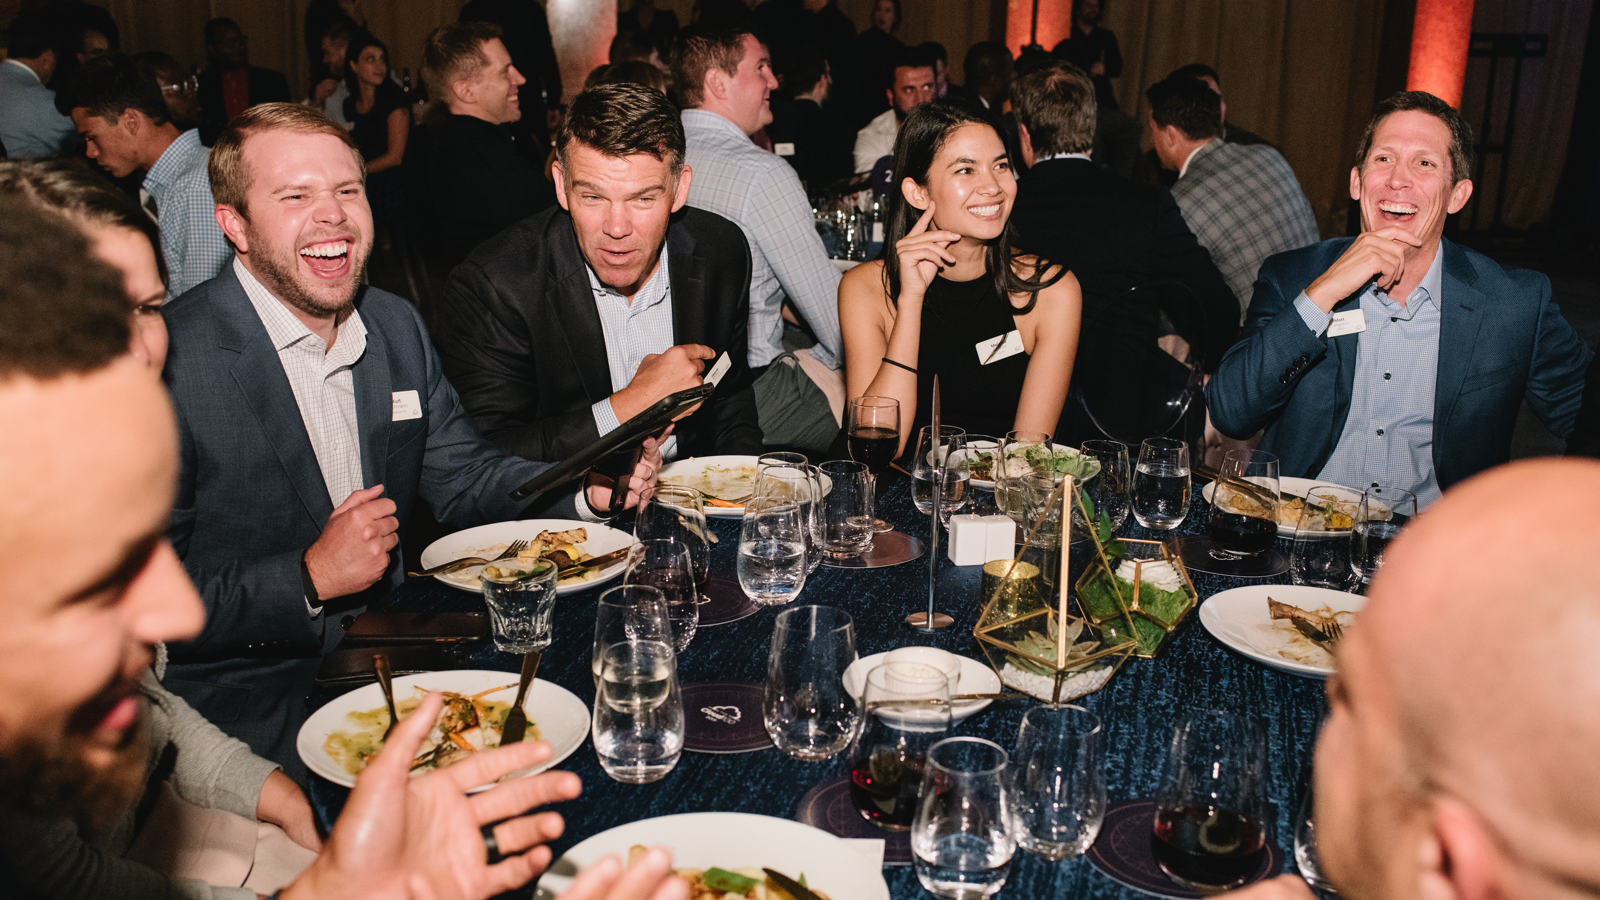 (Pictured: Stephen Curry, Jeff Lawson of Twilio, Matt Langdon of Sketch, Melanie Perkins of Canva, Steve Miller of Bank of America Merrill Lynch, Kurt Rathmann of ScaleFactor, and Rachel Carlson of Guild Education at The 2019 Cloud 100 Celebration)